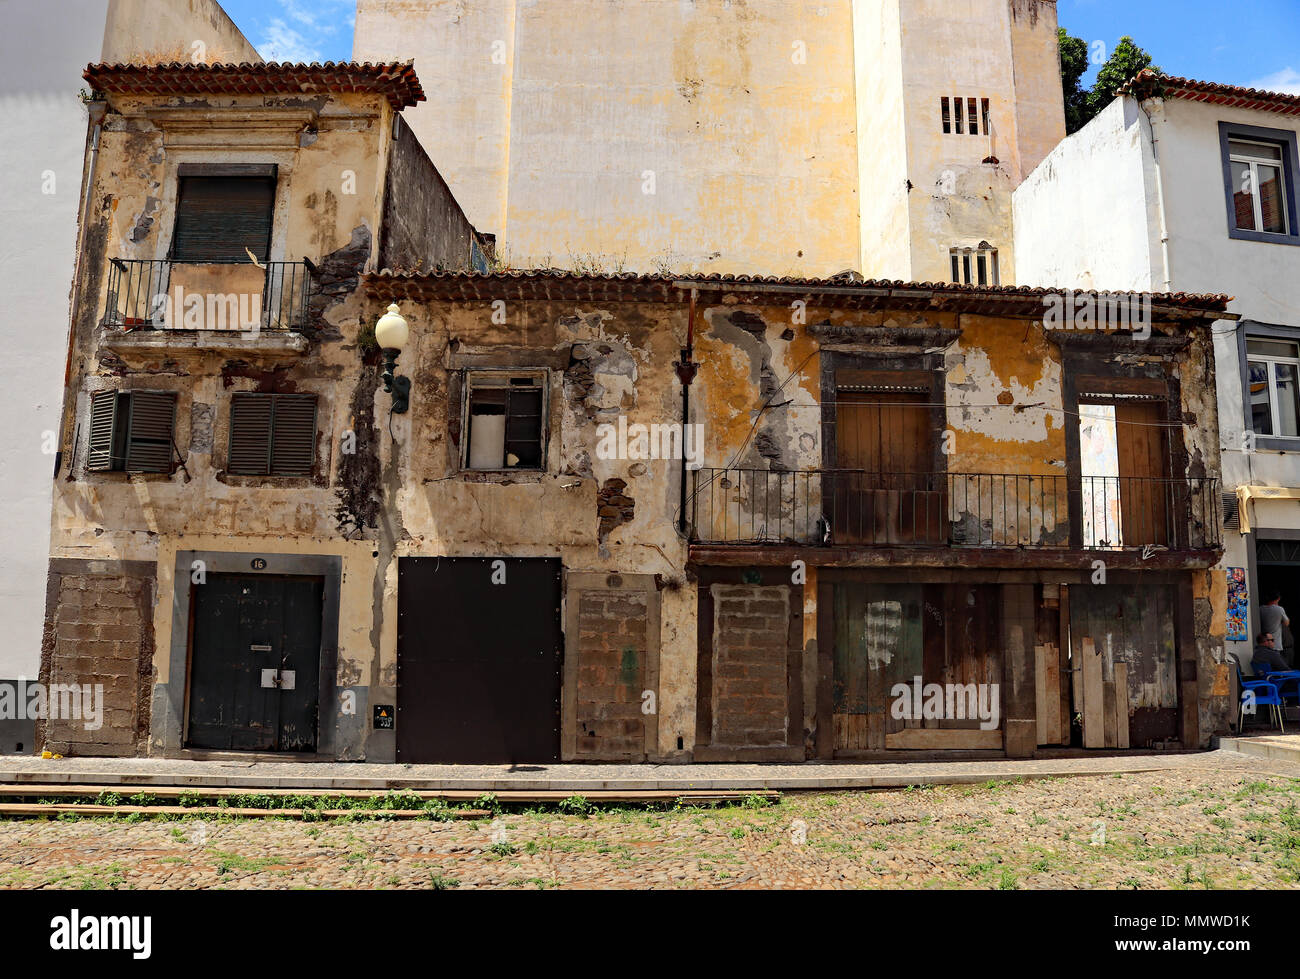 Fading buildings showing their age near Largo Pelourinho Funchal on Madeira - Stock Image